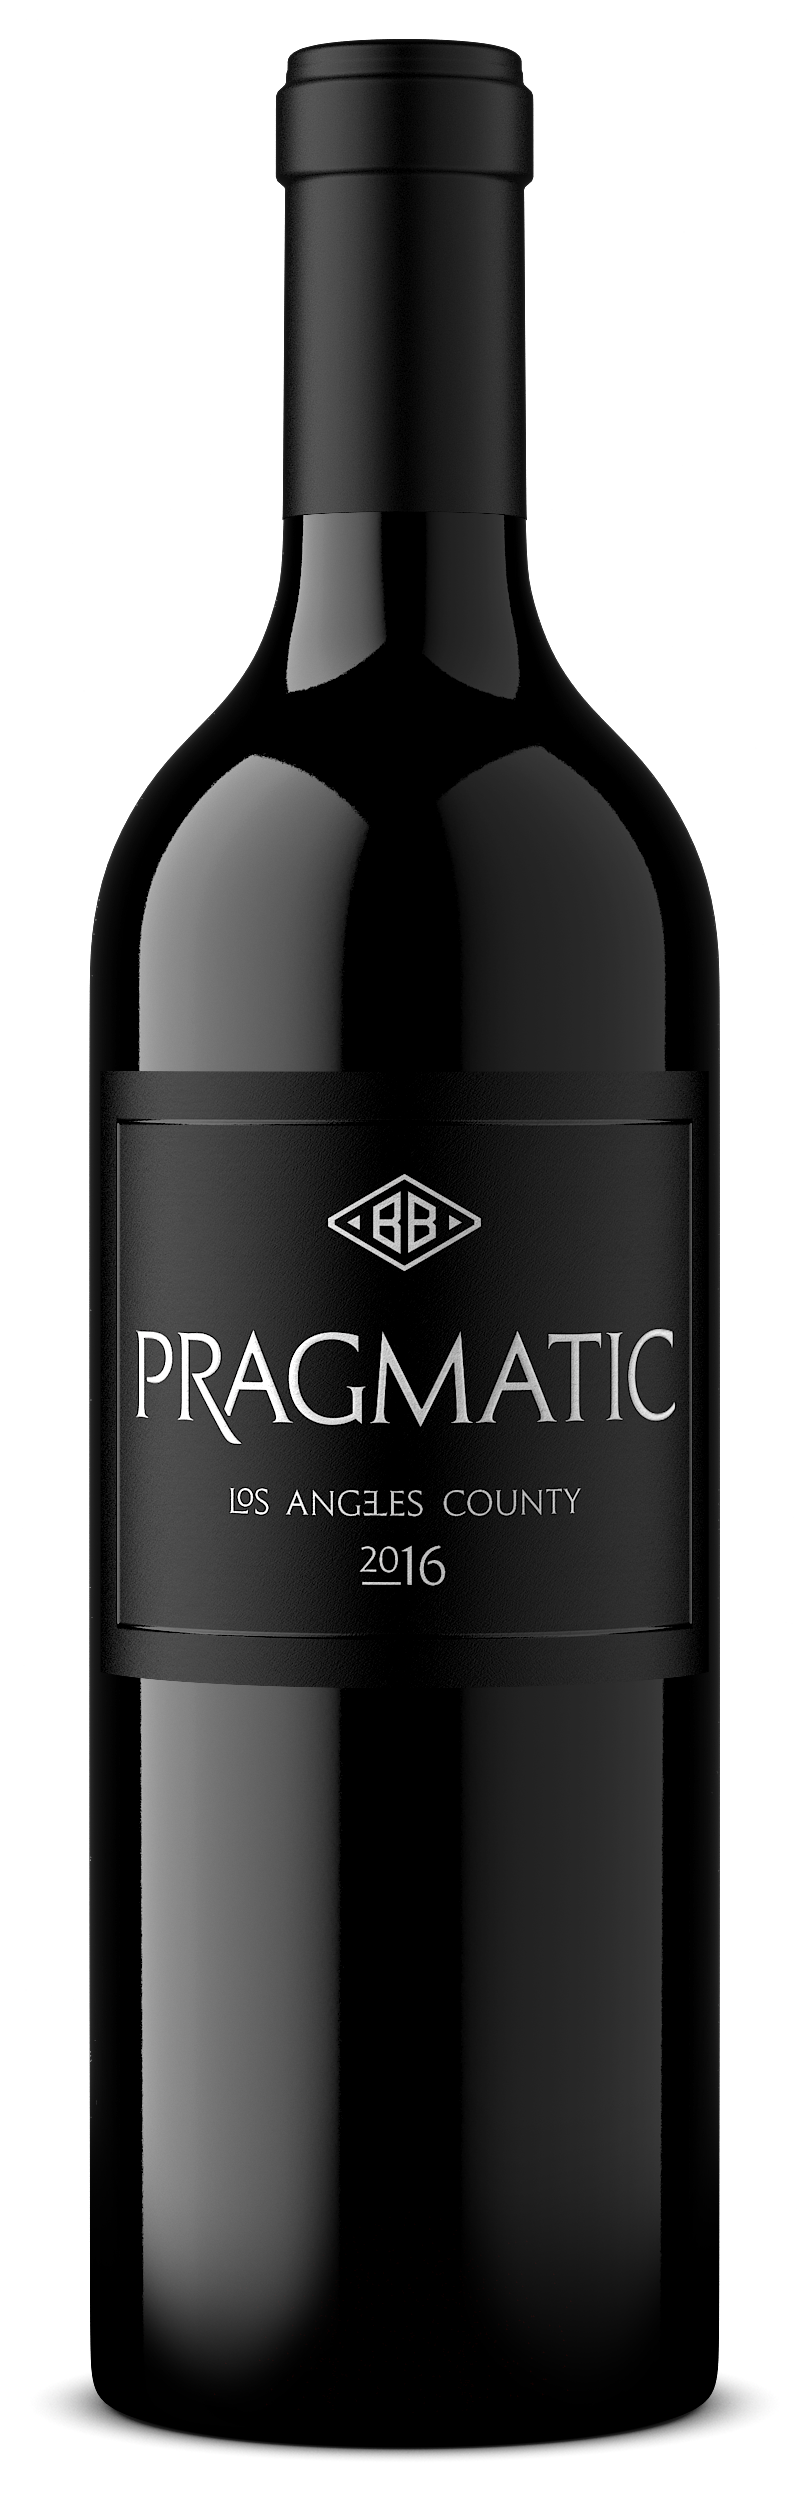 2016 Pragmatic, Los Angeles Product Image